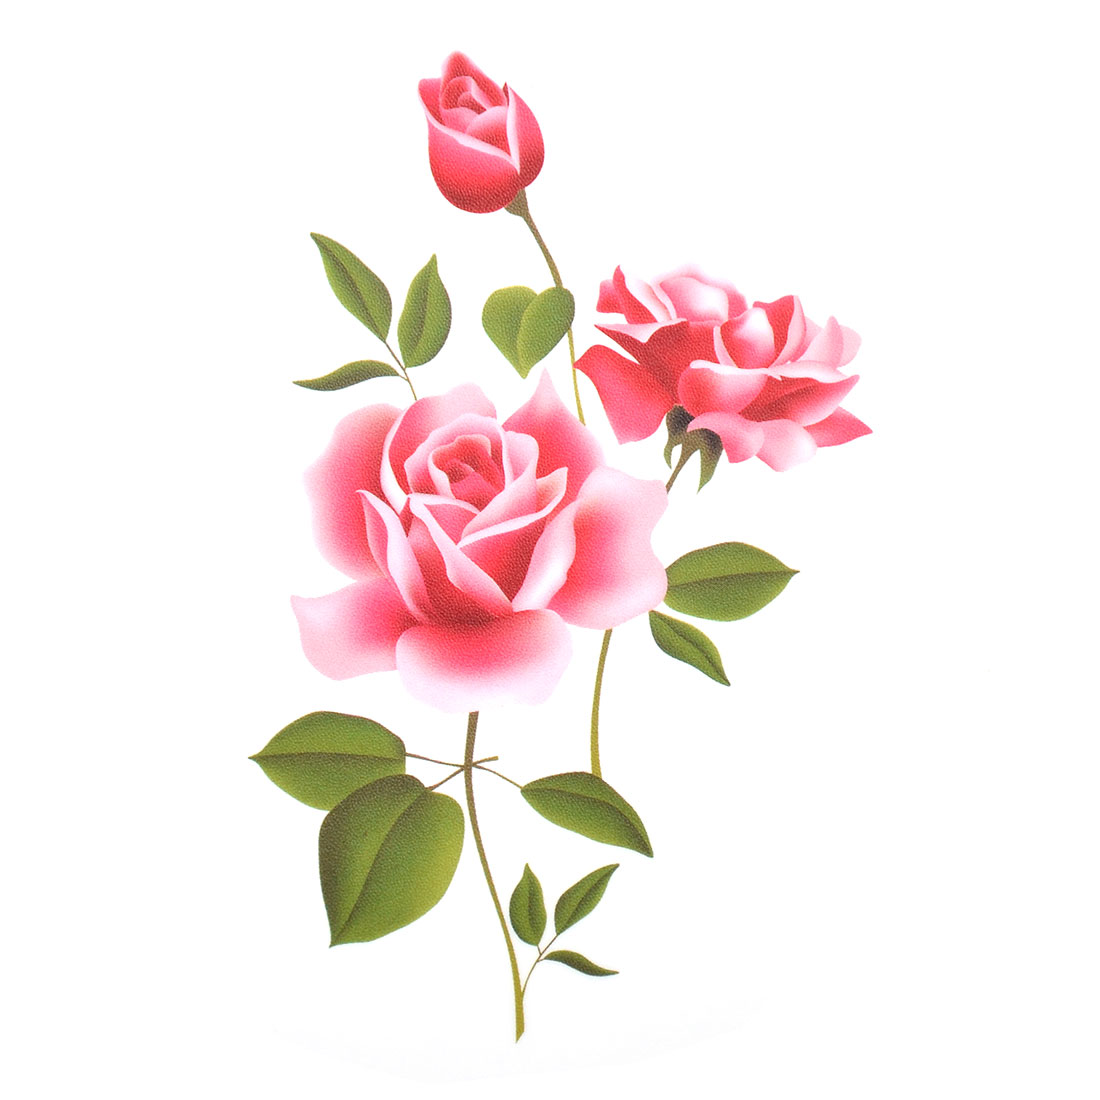 Window Room Art Decal PVC Rose Pattern Wall Sticker Wallpaper 70 x 50cm